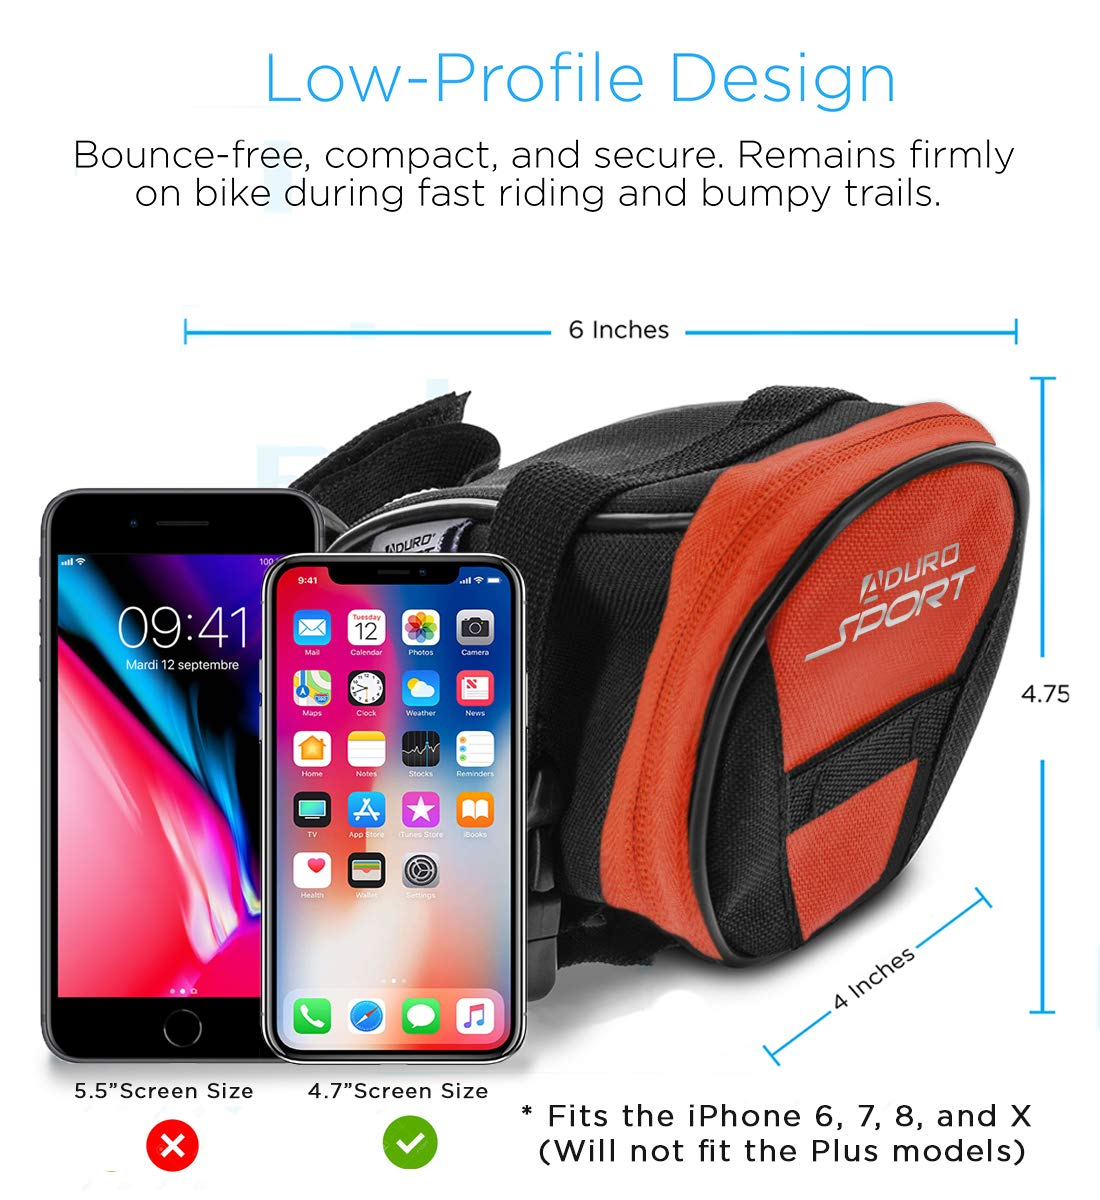 Water Resistant Bike Storage Pack Seat Pouch with Taillight Hanger to Keep You Safe Aduro Bike Bag Bike Seat Pack Strap-On Saddle Bag Under Seat for Cycling All Bikes